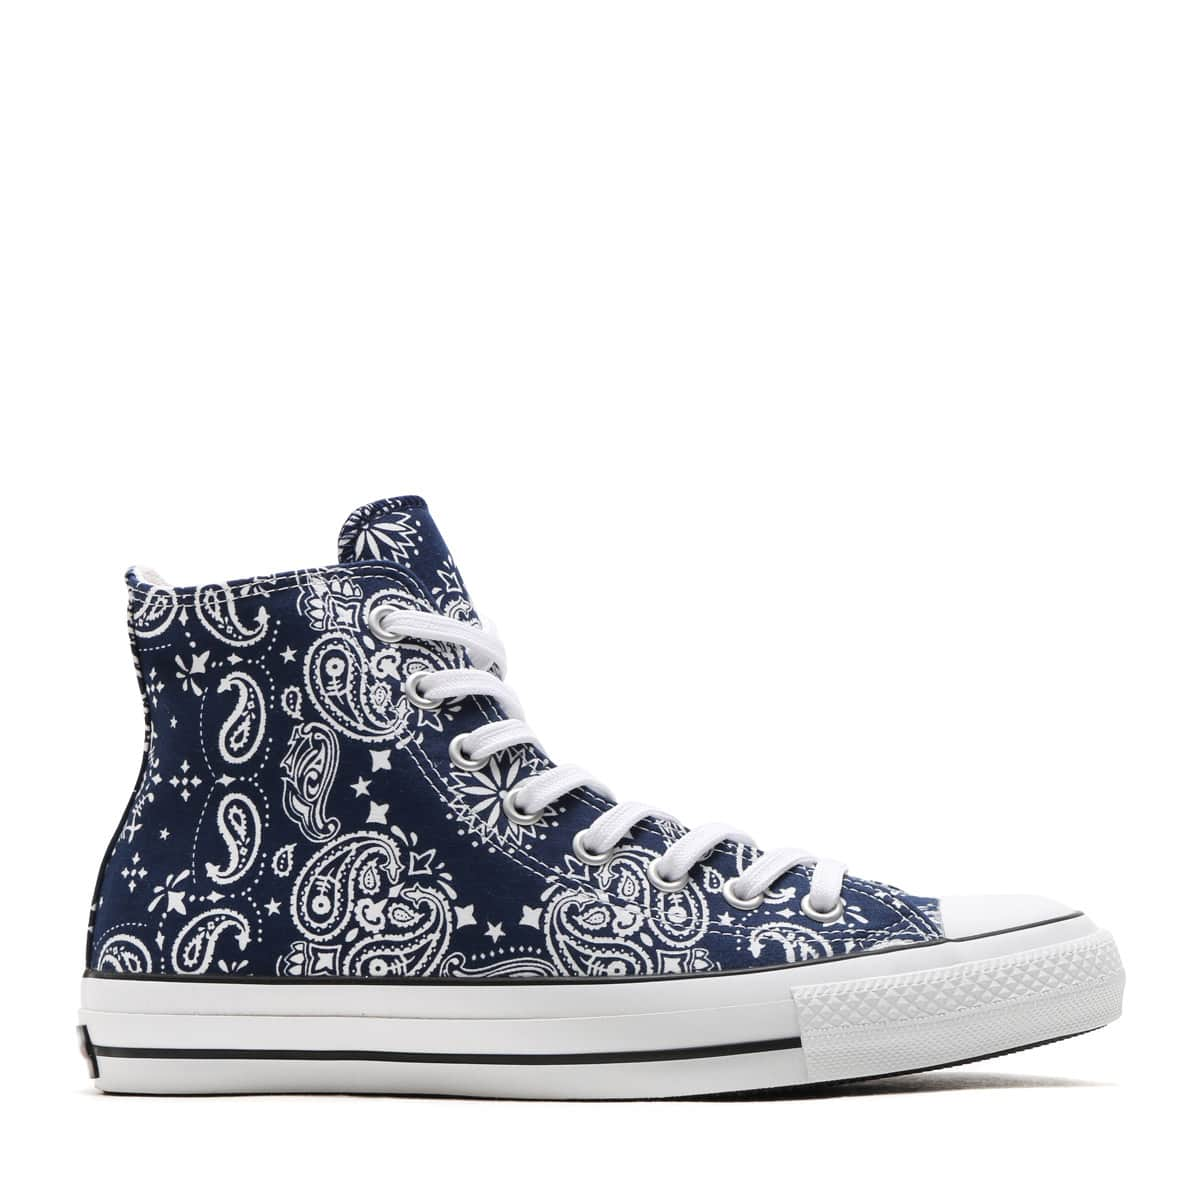 89fbac6c162d11 CONVERSE ALL STAR 100 BANDANA HI NAVY